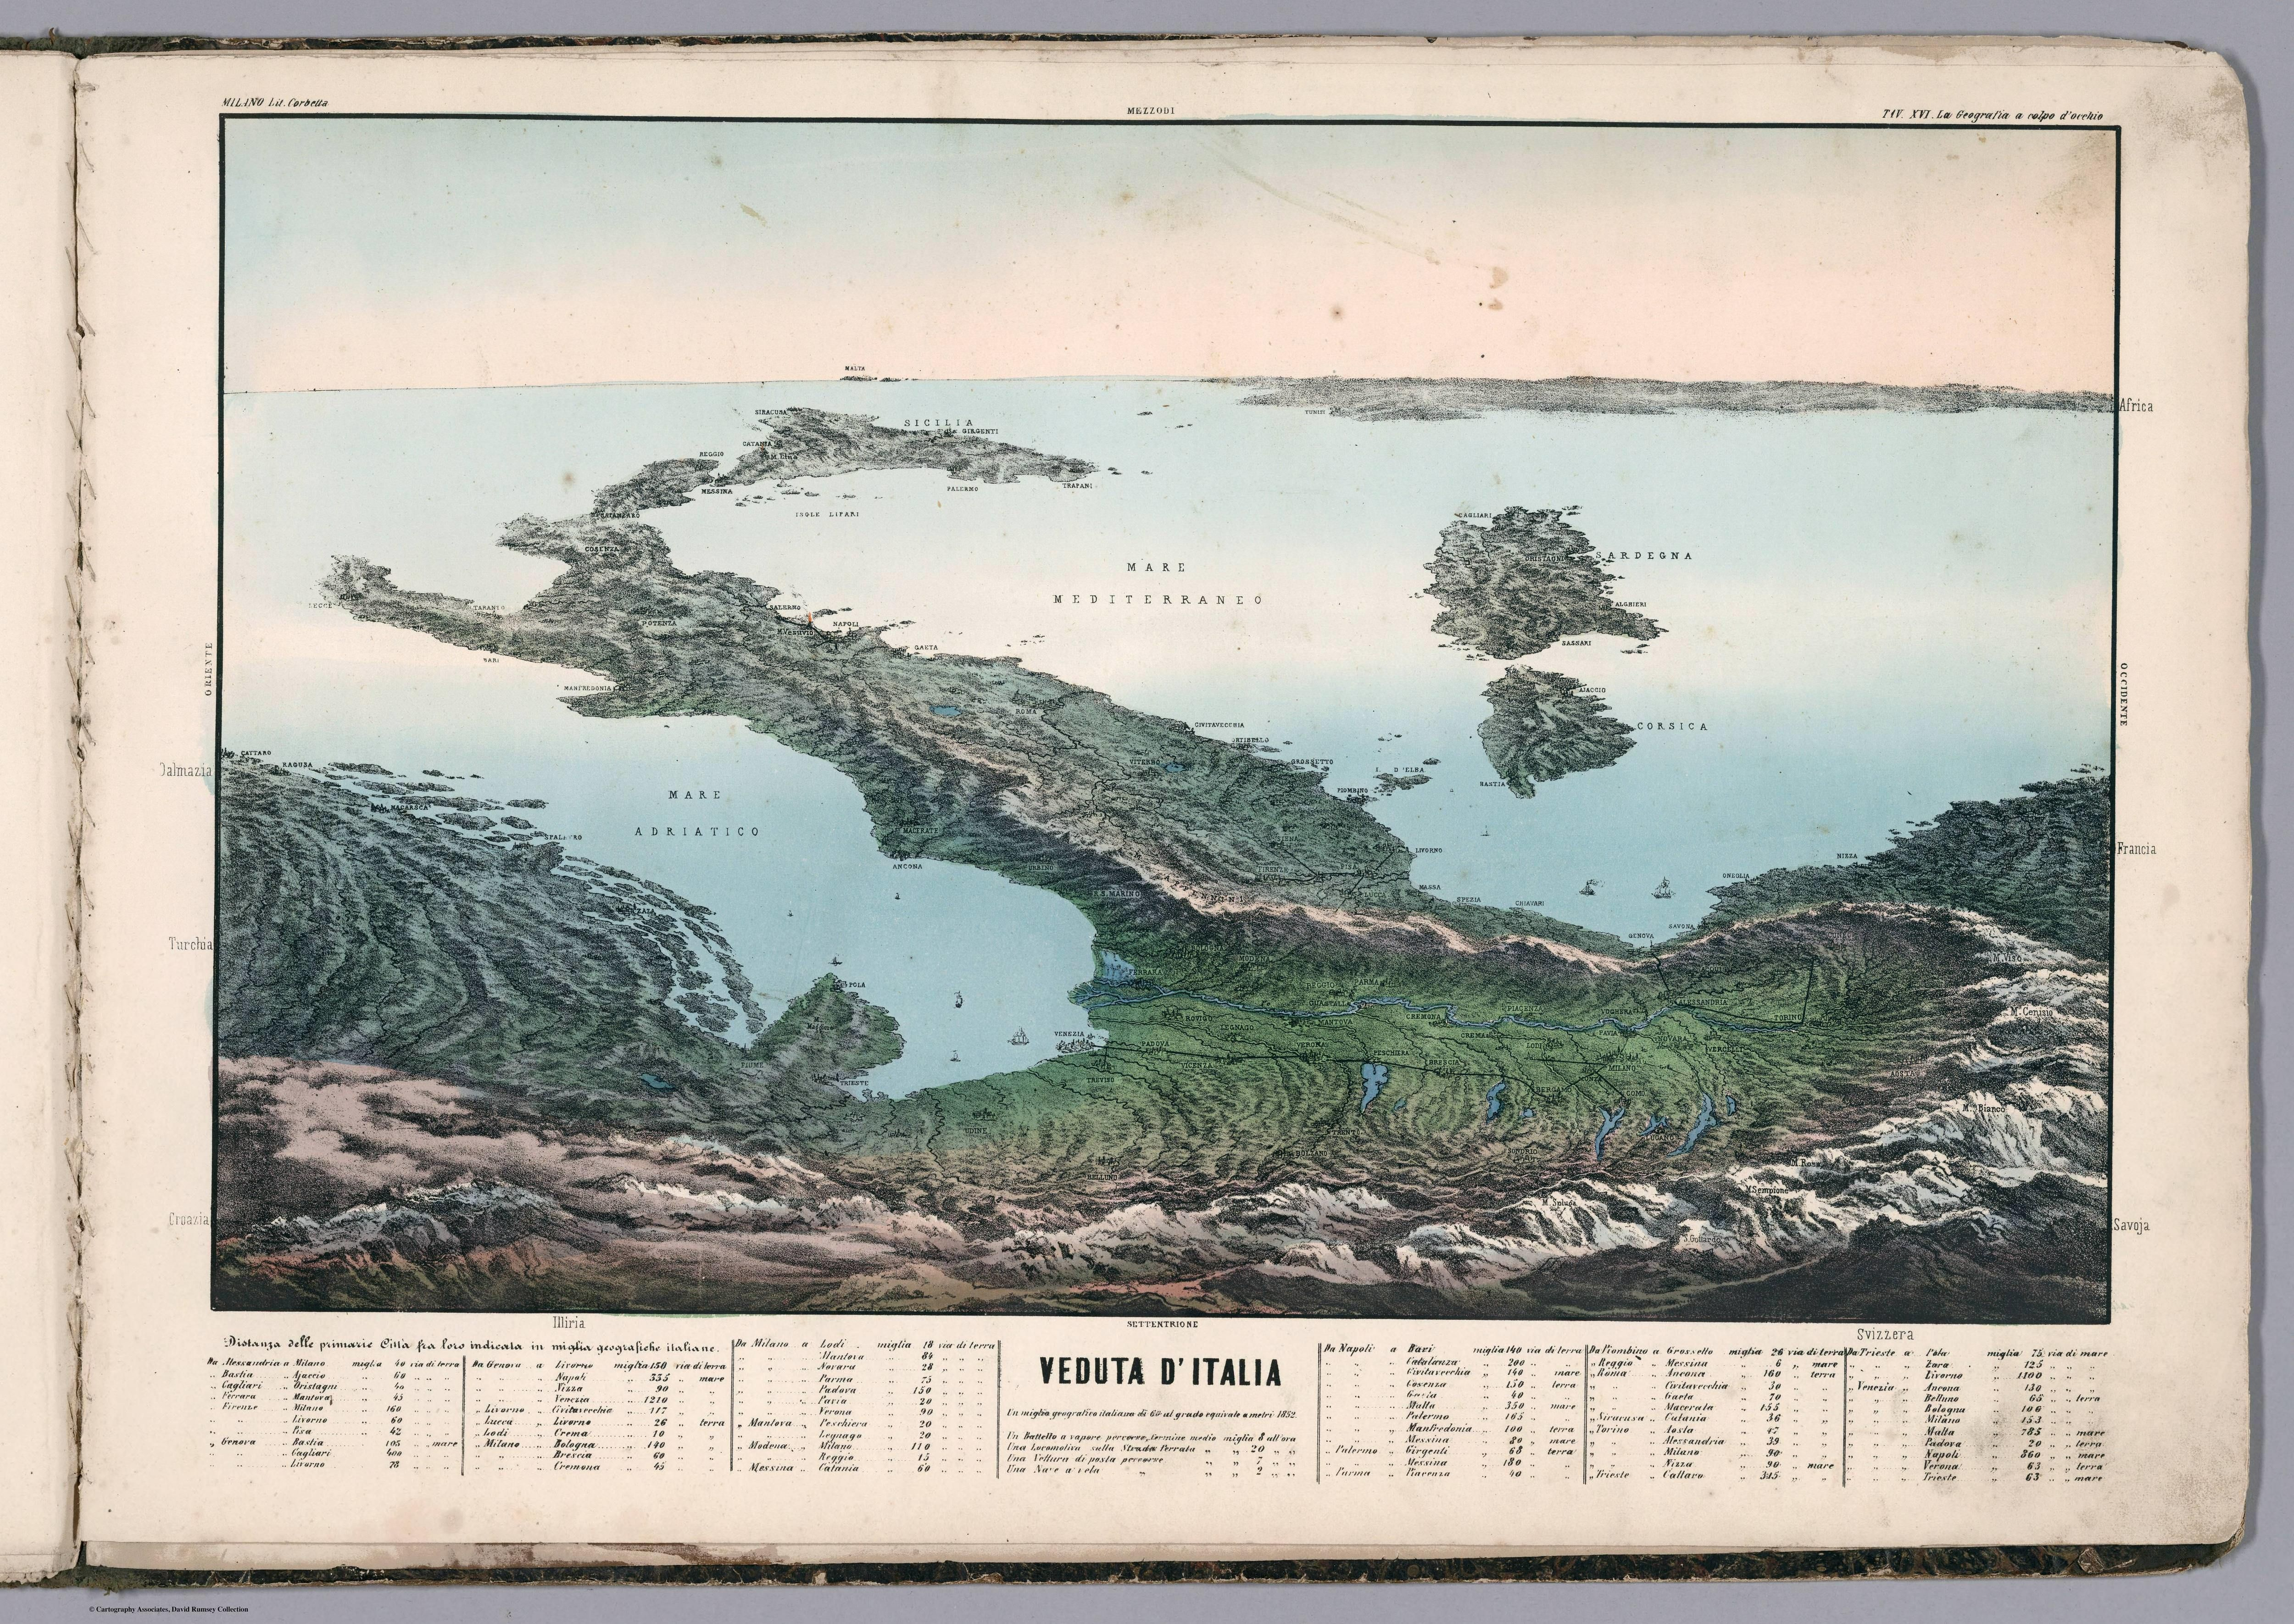 1853 panoramic view of Italy and the